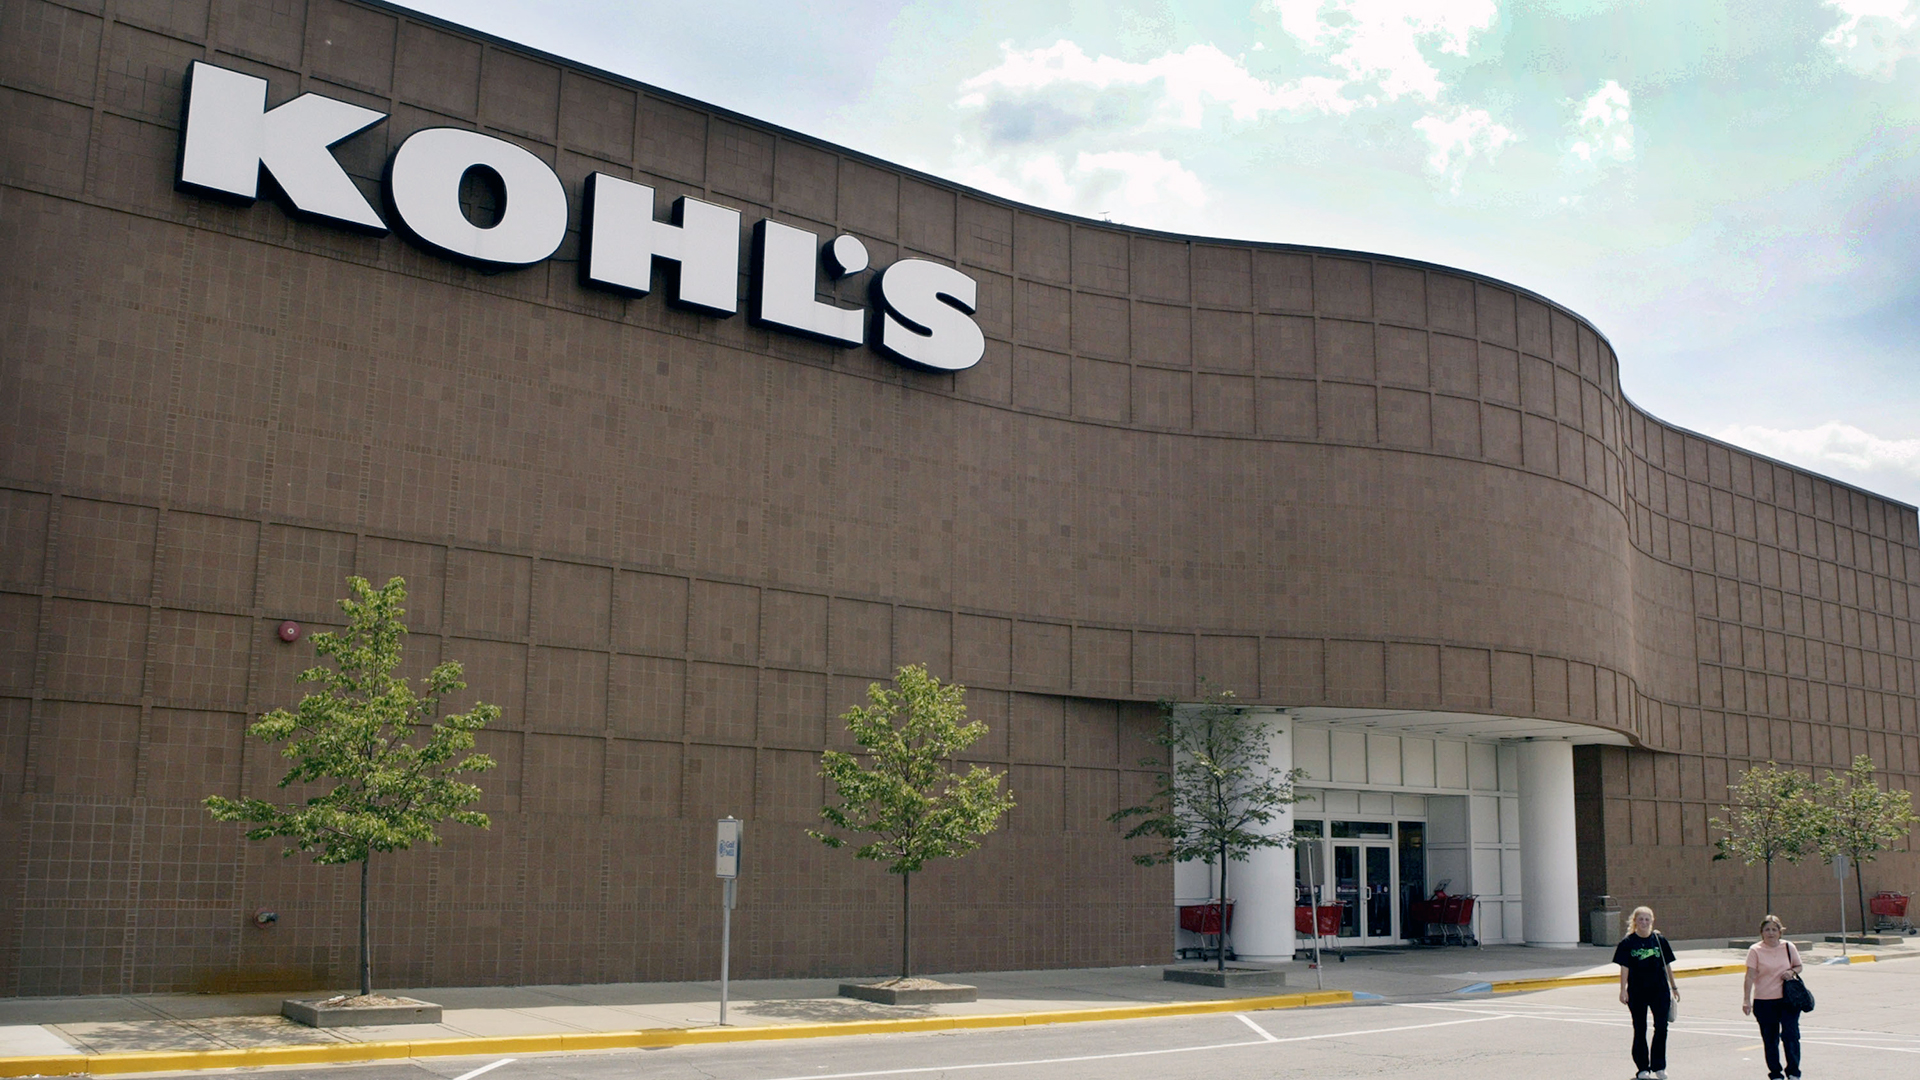 A Kohl's department store-159532.jpg97309402